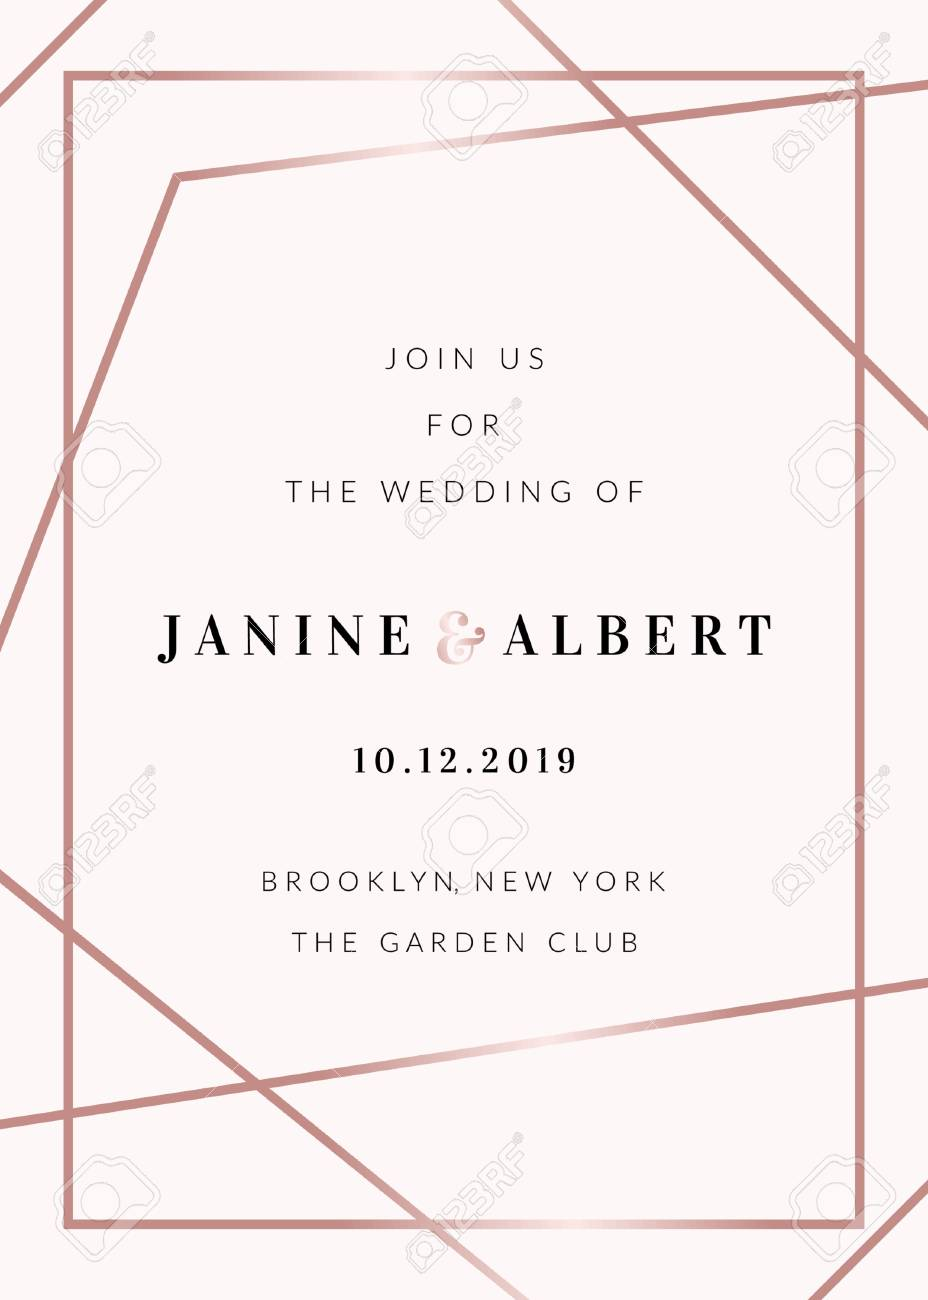 Wedding Invitation Template With Rose Gold Decorative Elements